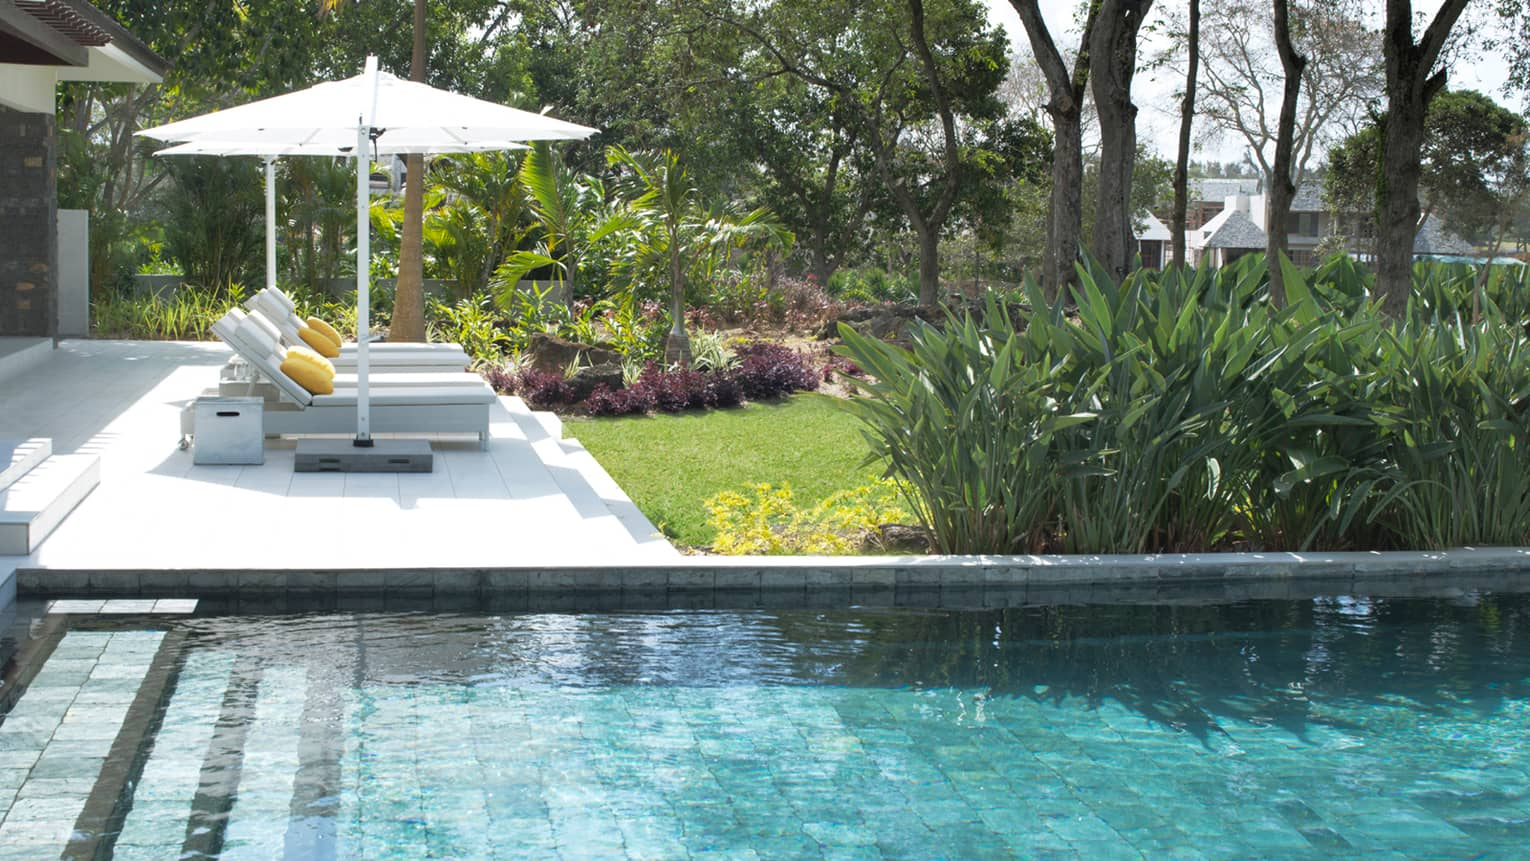 Stone steps leading into villa plunge pool, two white lounge chairs, umbrella on deck